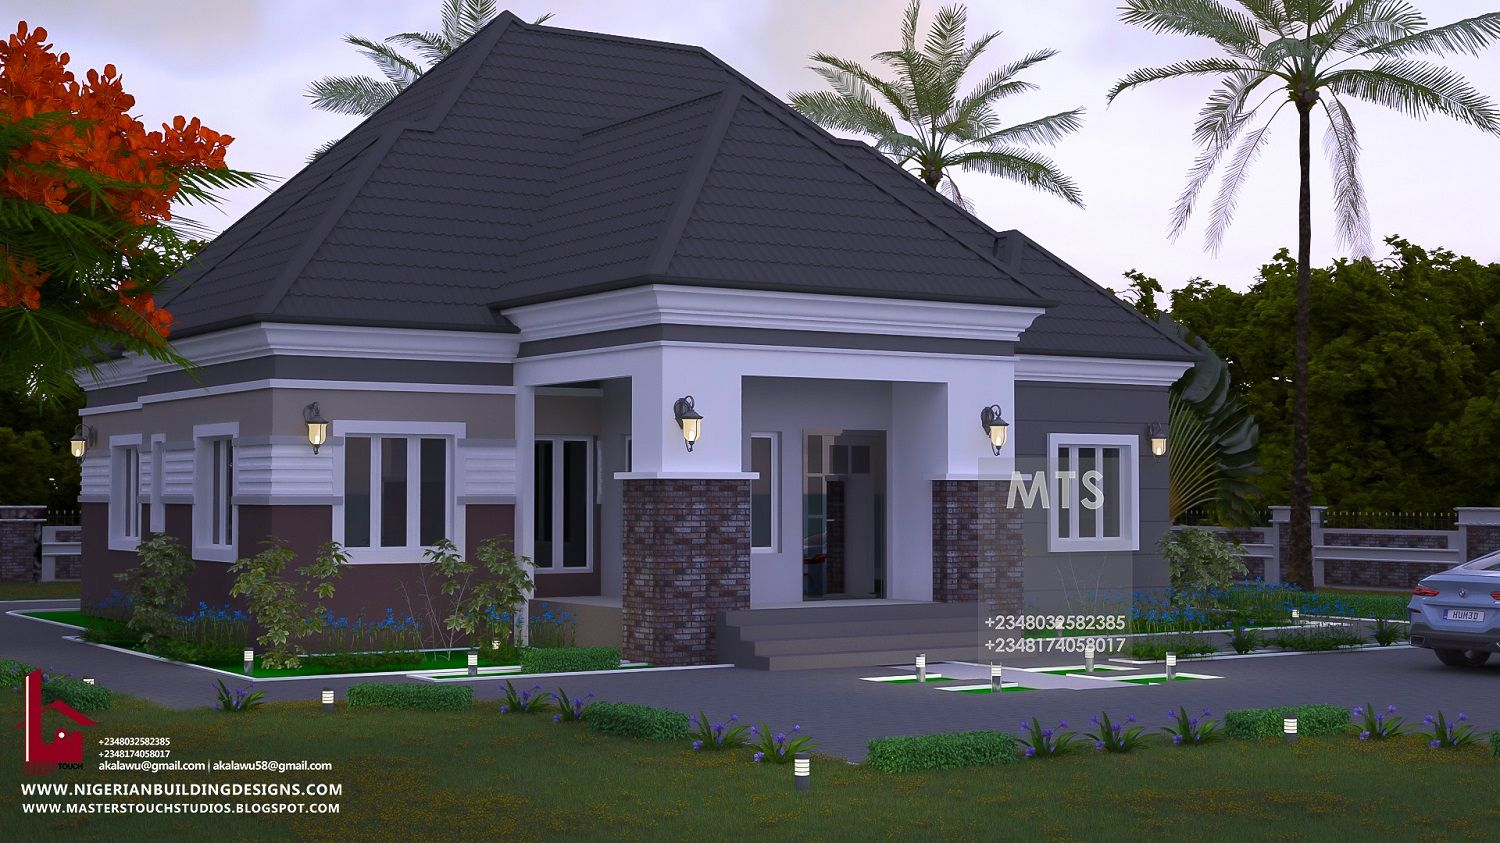 4 Bedroom Bungalow Rf 4022 Beautiful House Plans Modern Bungalow House Plans House Plan Gallery